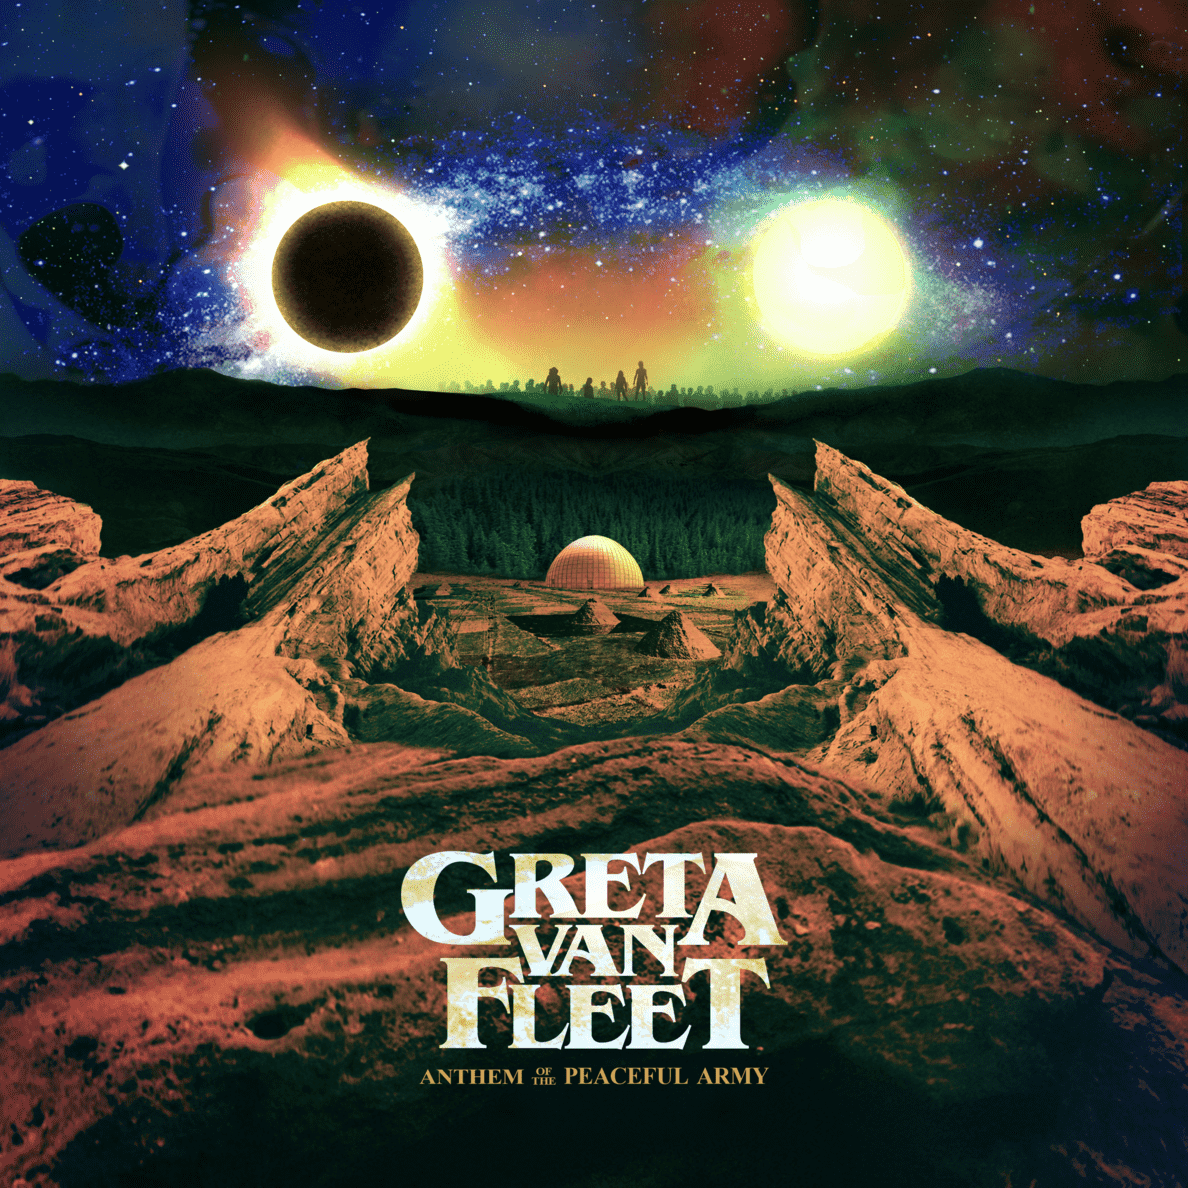 Anthem of the Peaceful Army Greta Van Fleet auf CD